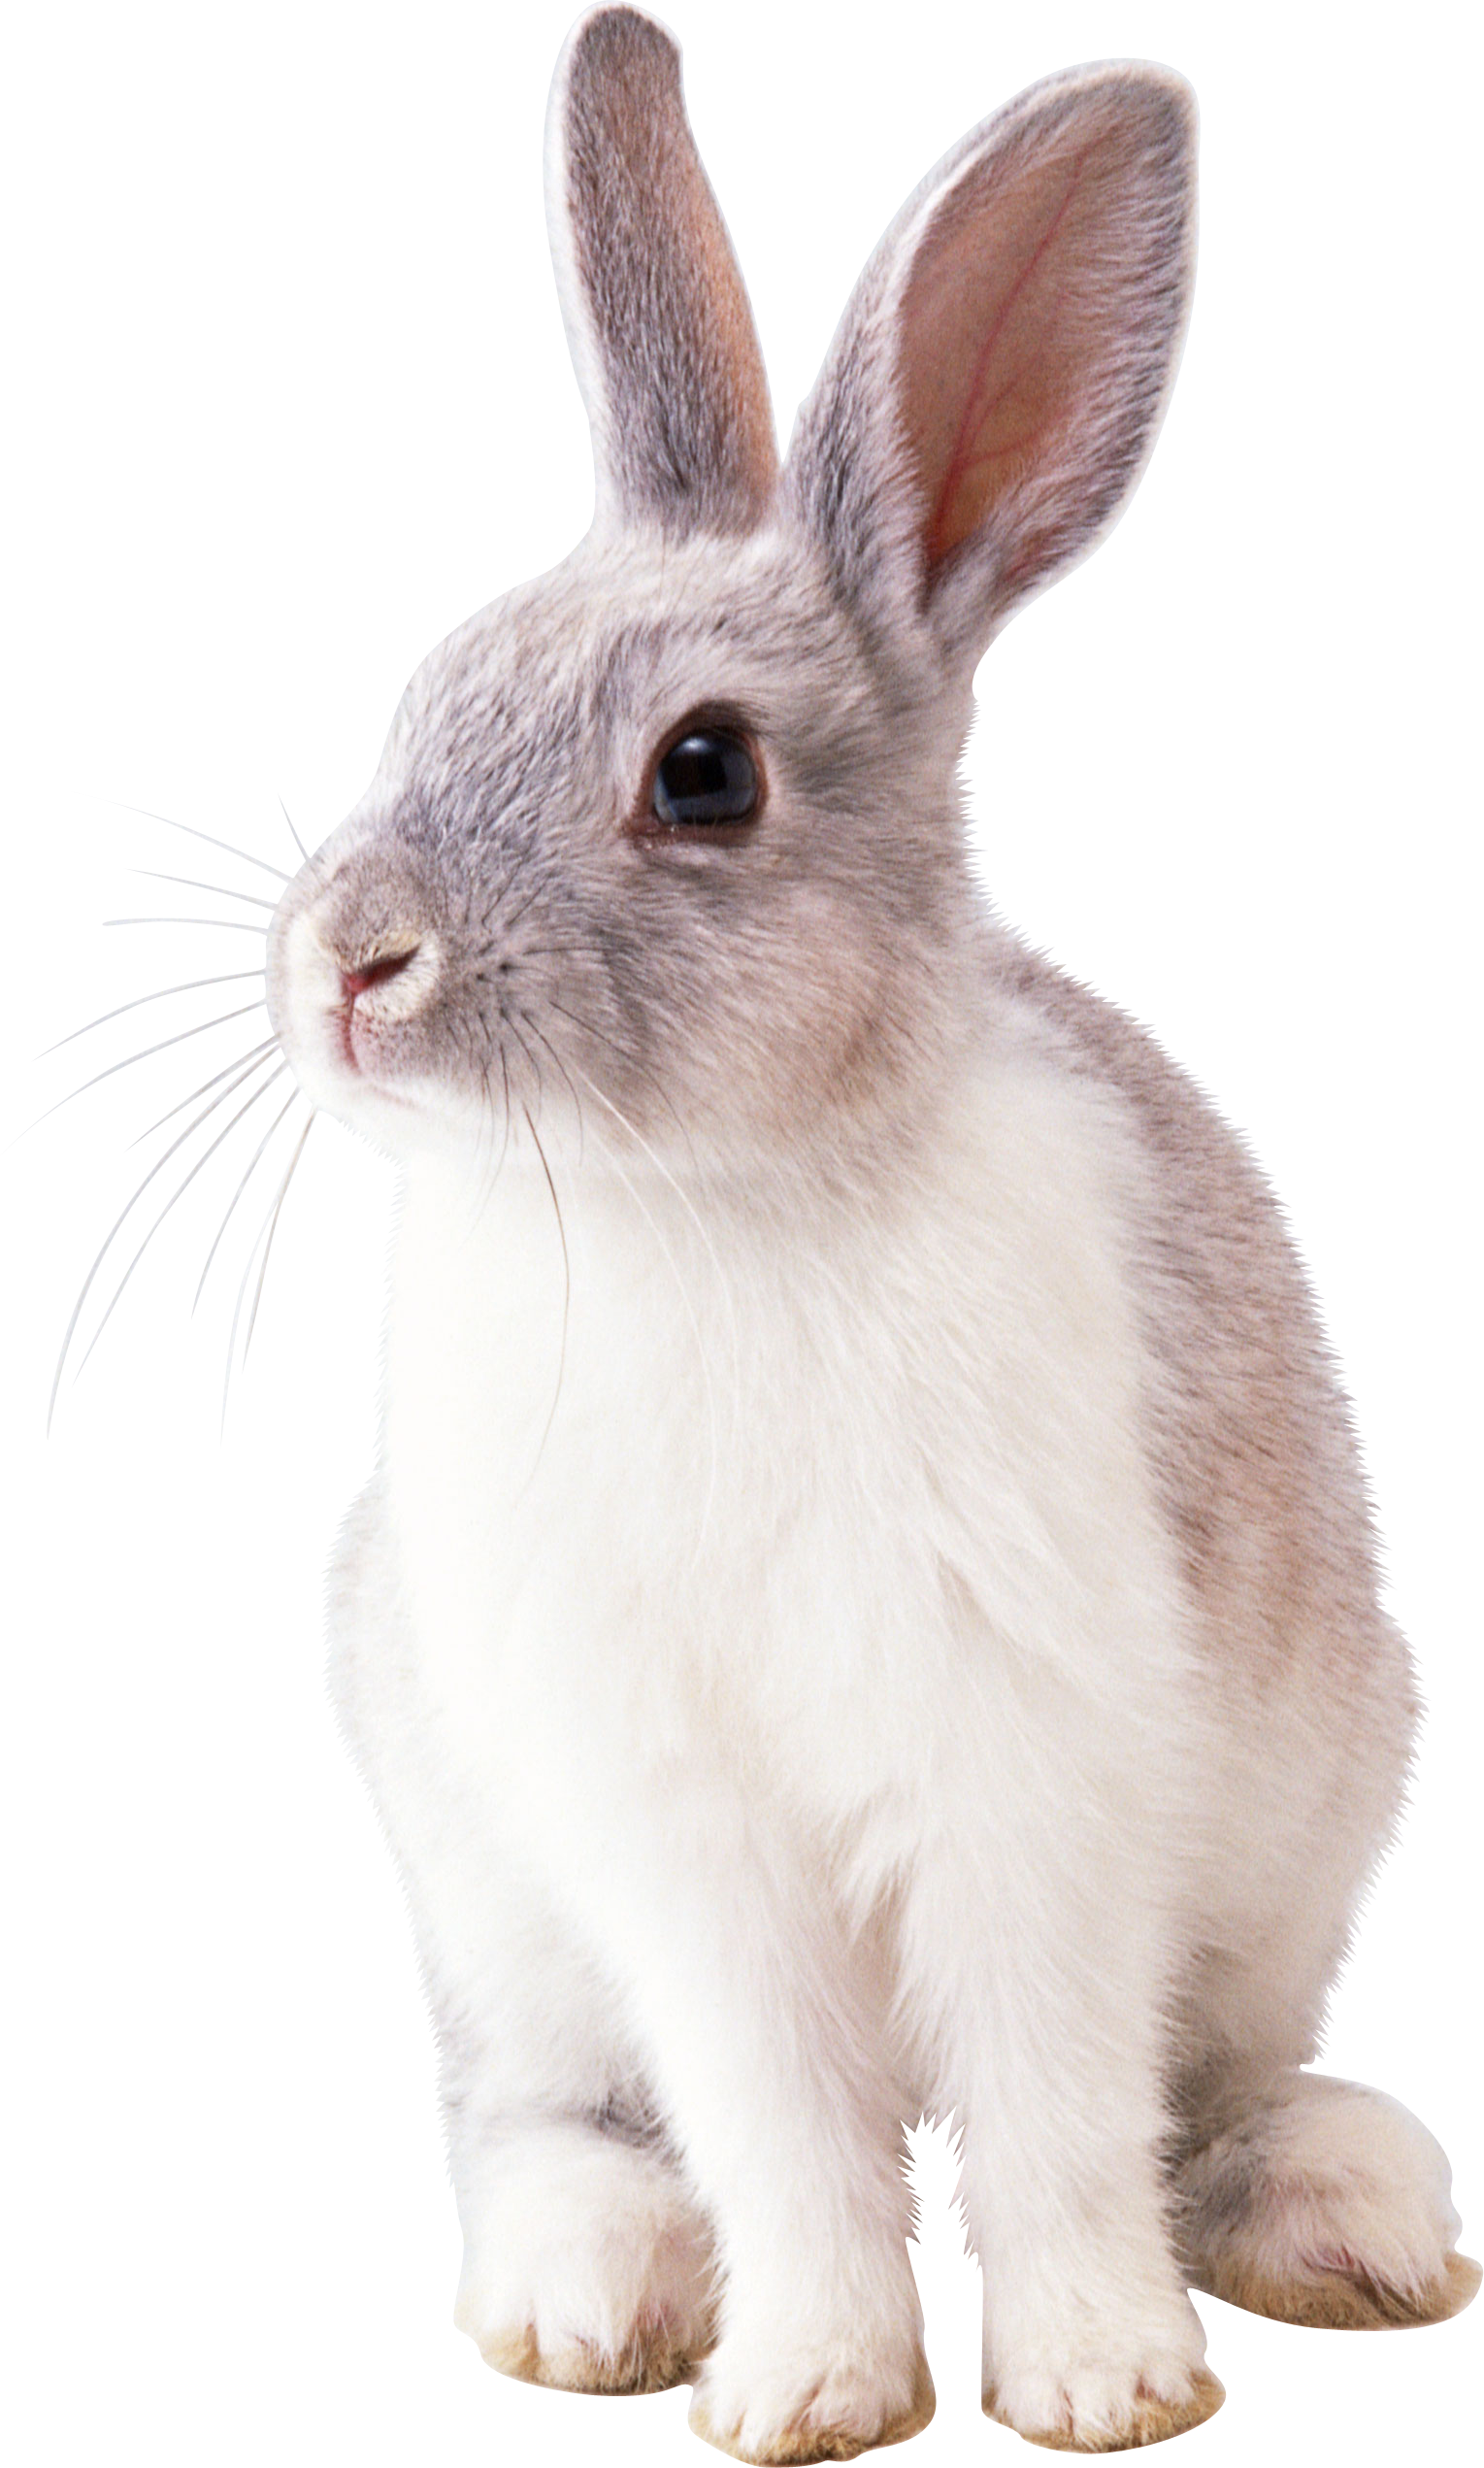 Bunny PNG - 27614